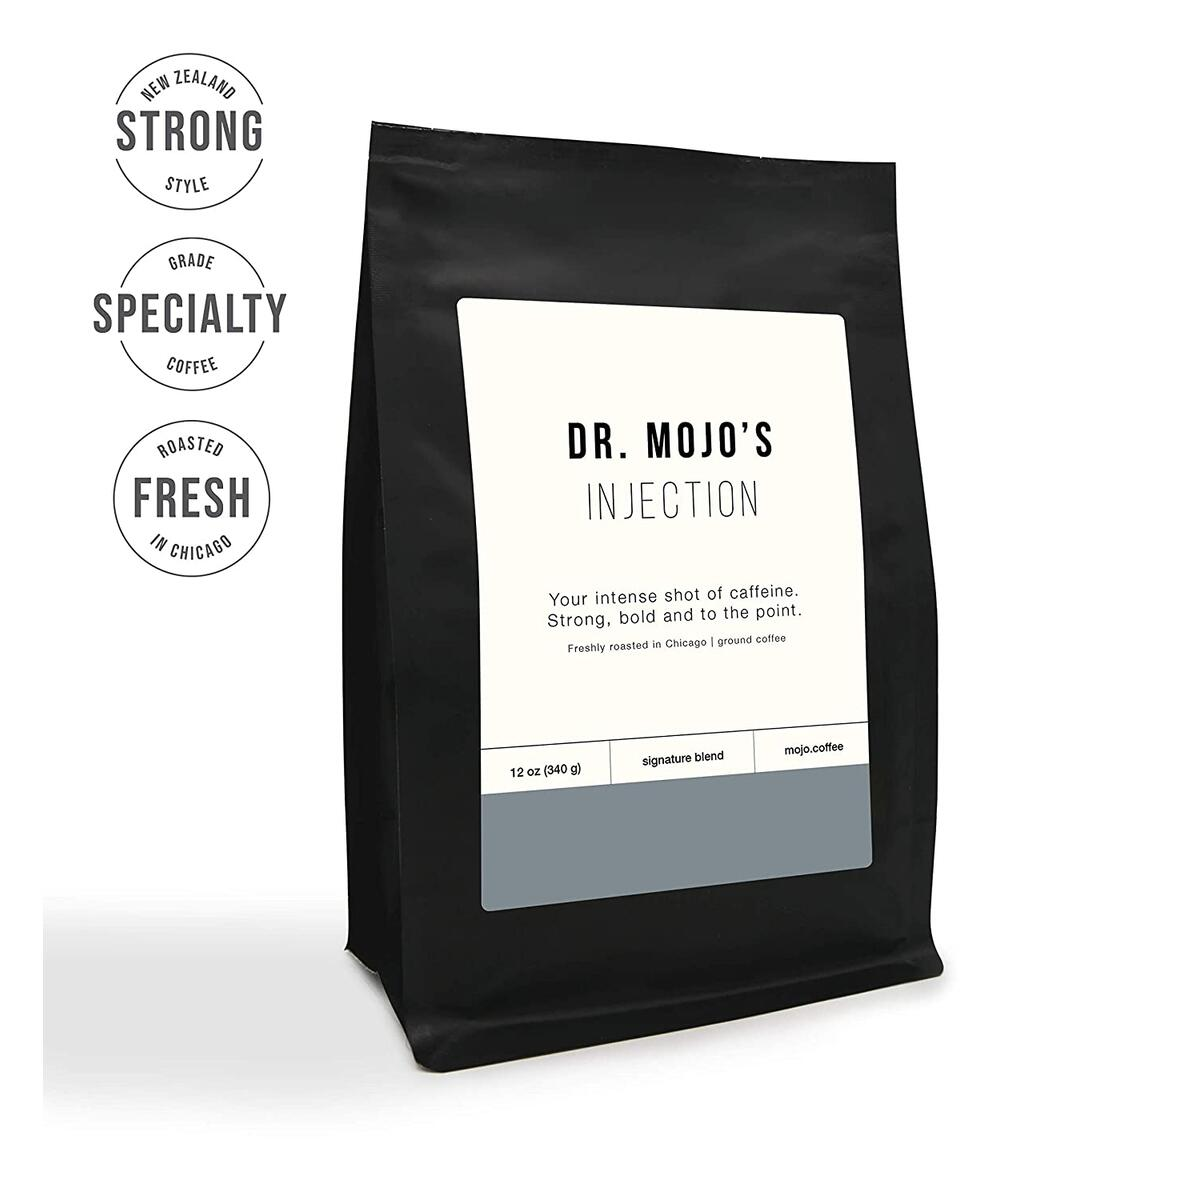 Medium Roast Bold, Dr Mojo Coffee Roasters Injection Blend, Ground Coffee, 12 oz.